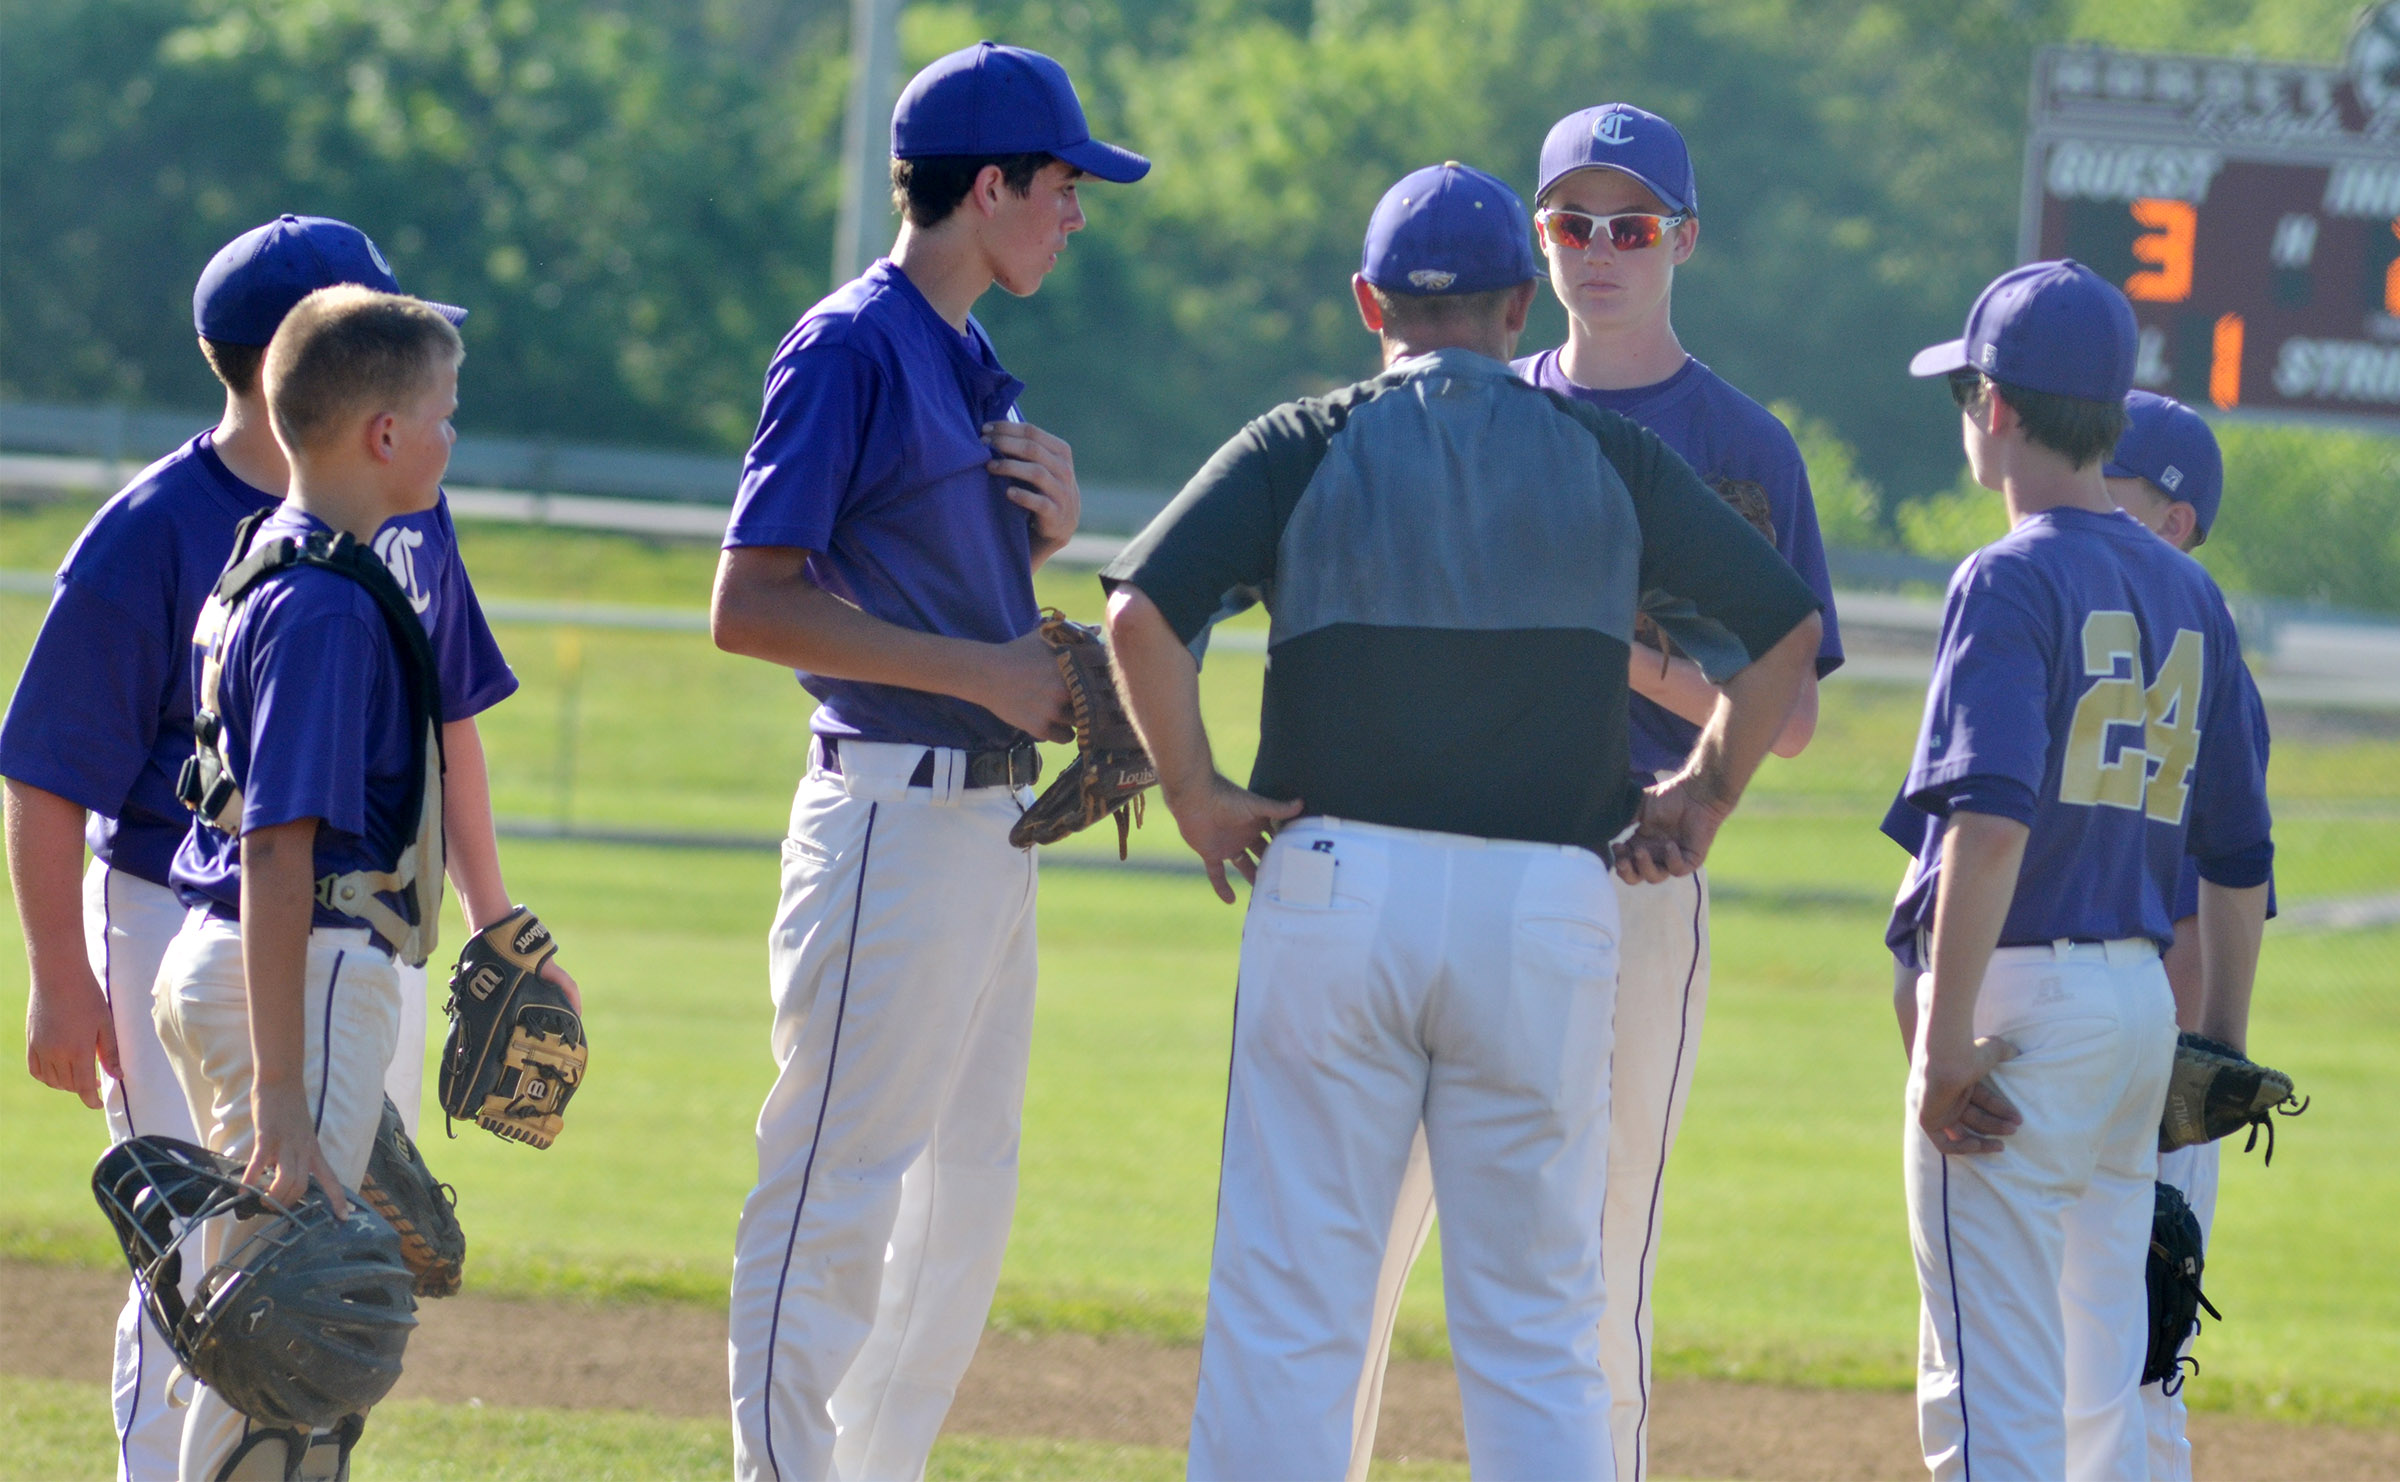 CMS head baseball coach Lynn Kearney talks to his players.